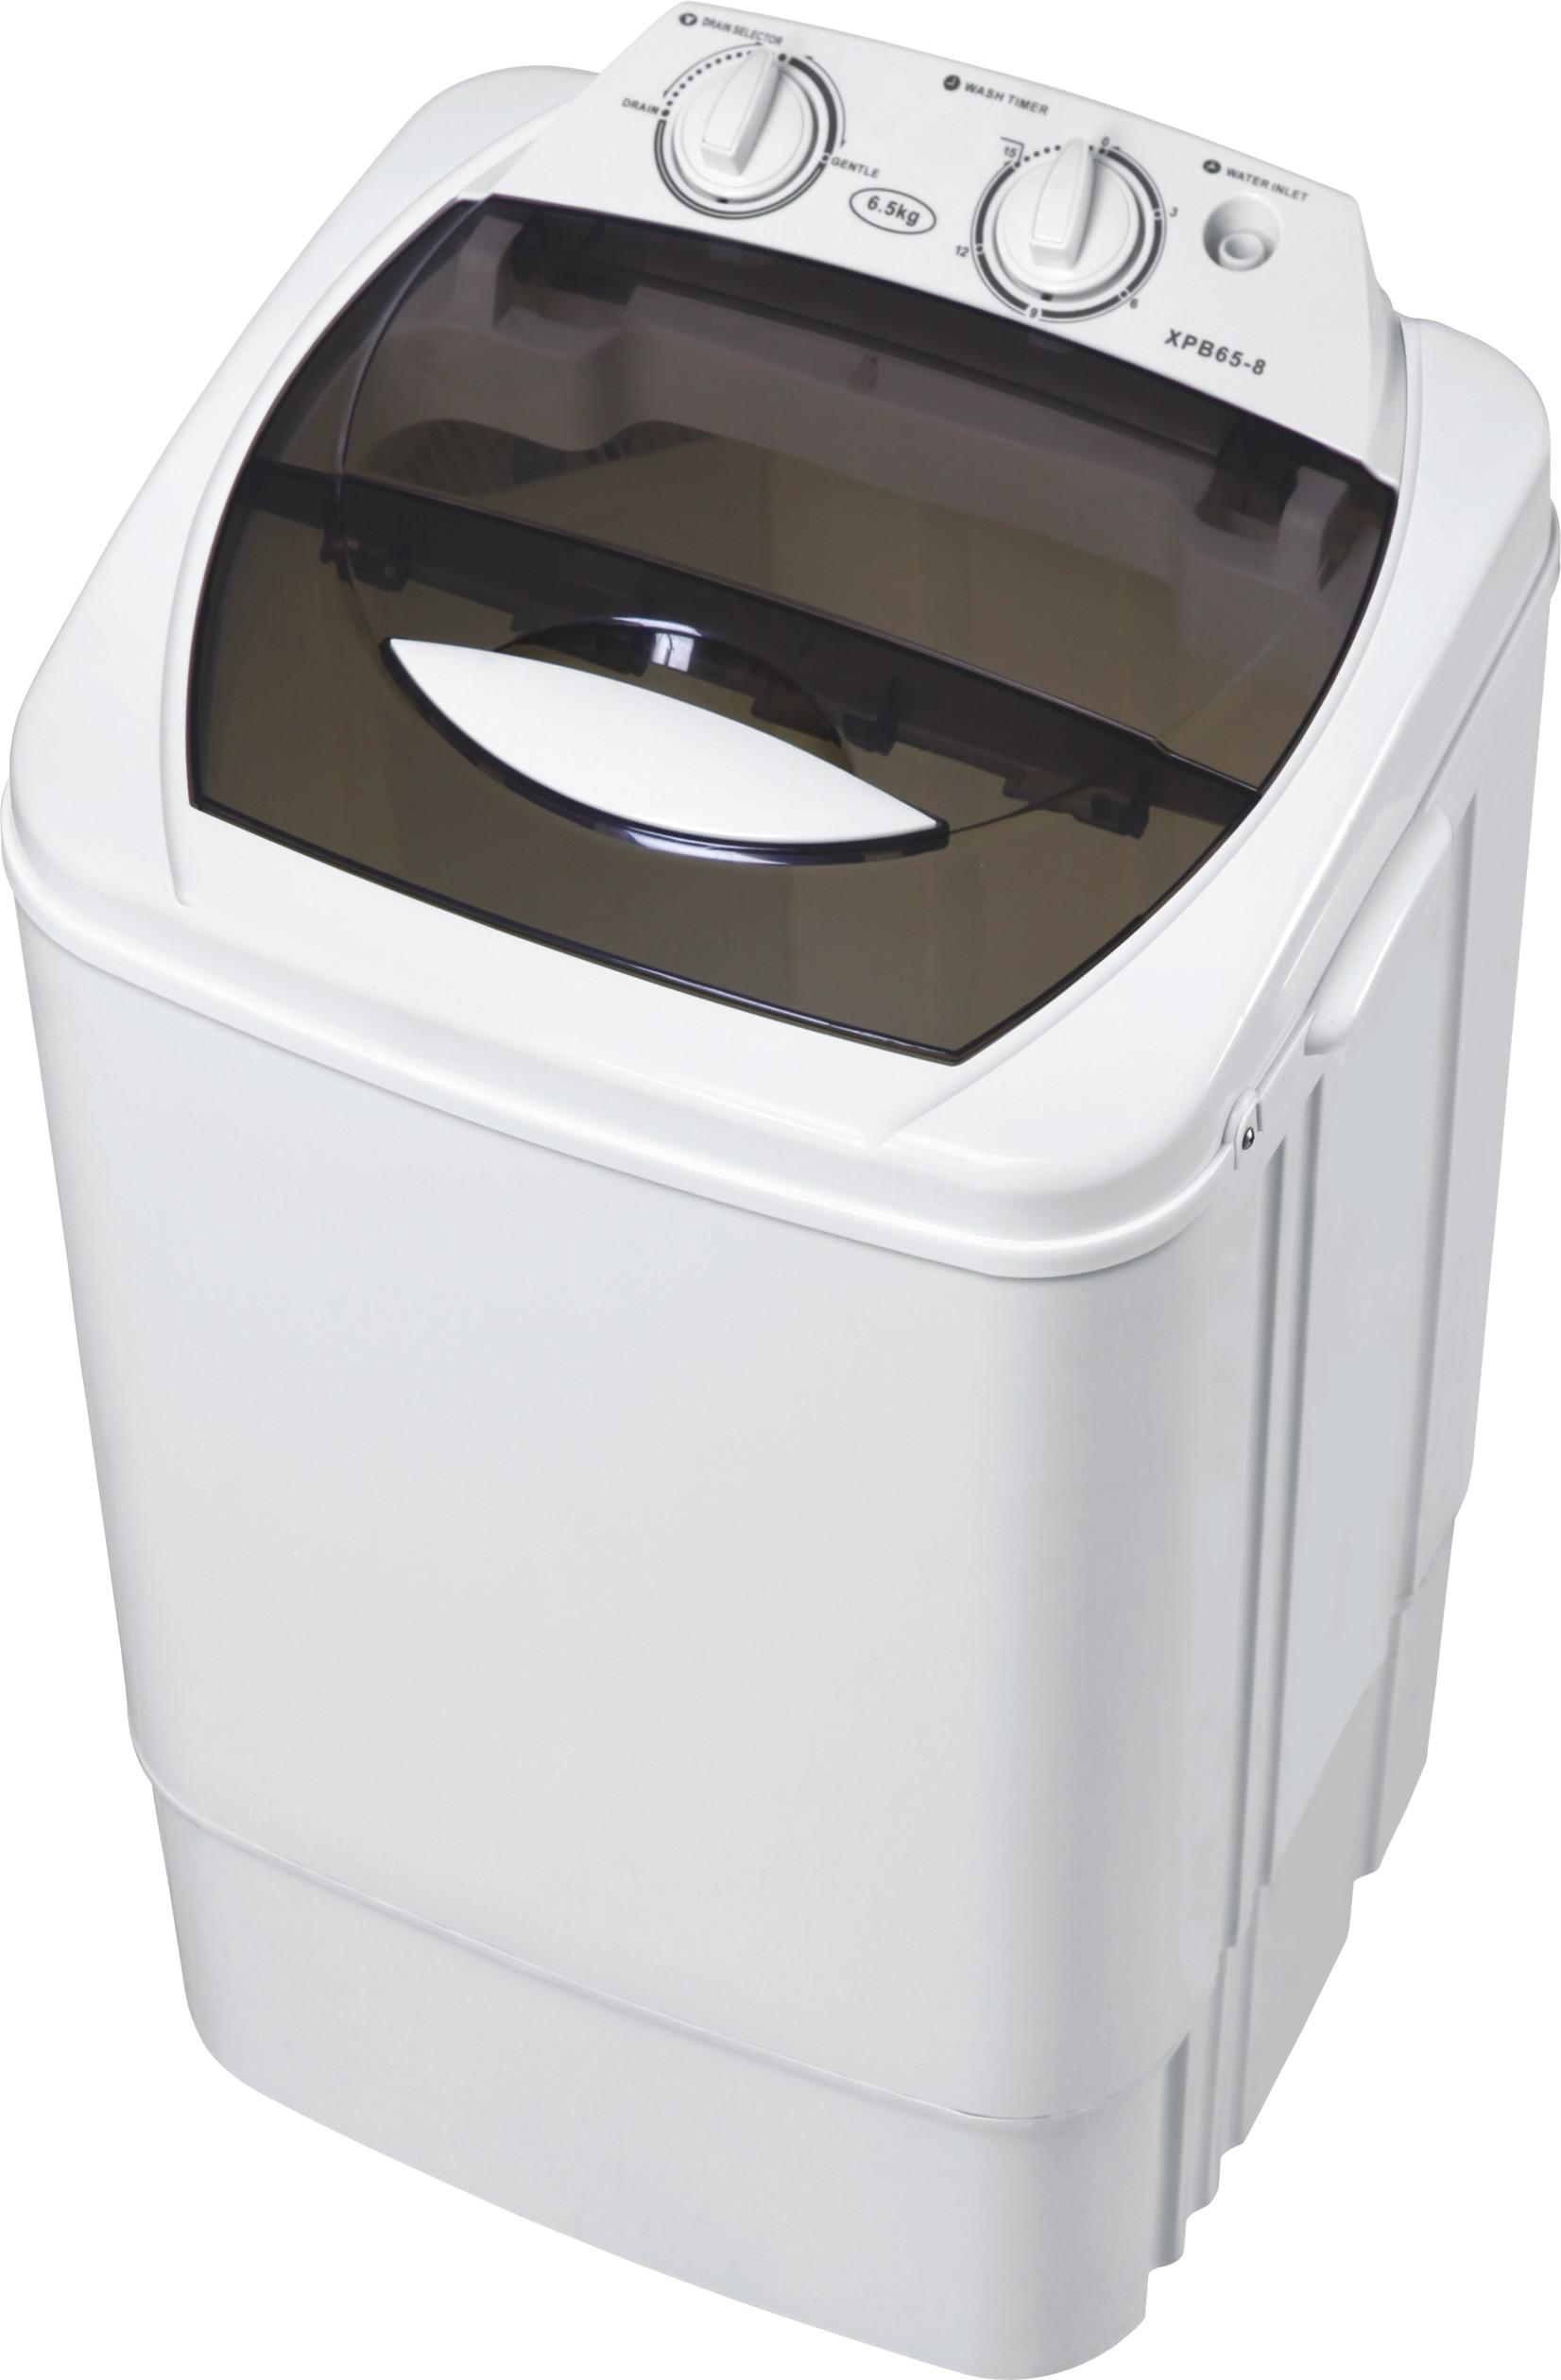 Top 5 Best Selling Semi Automatic Washing Machine Under Rs